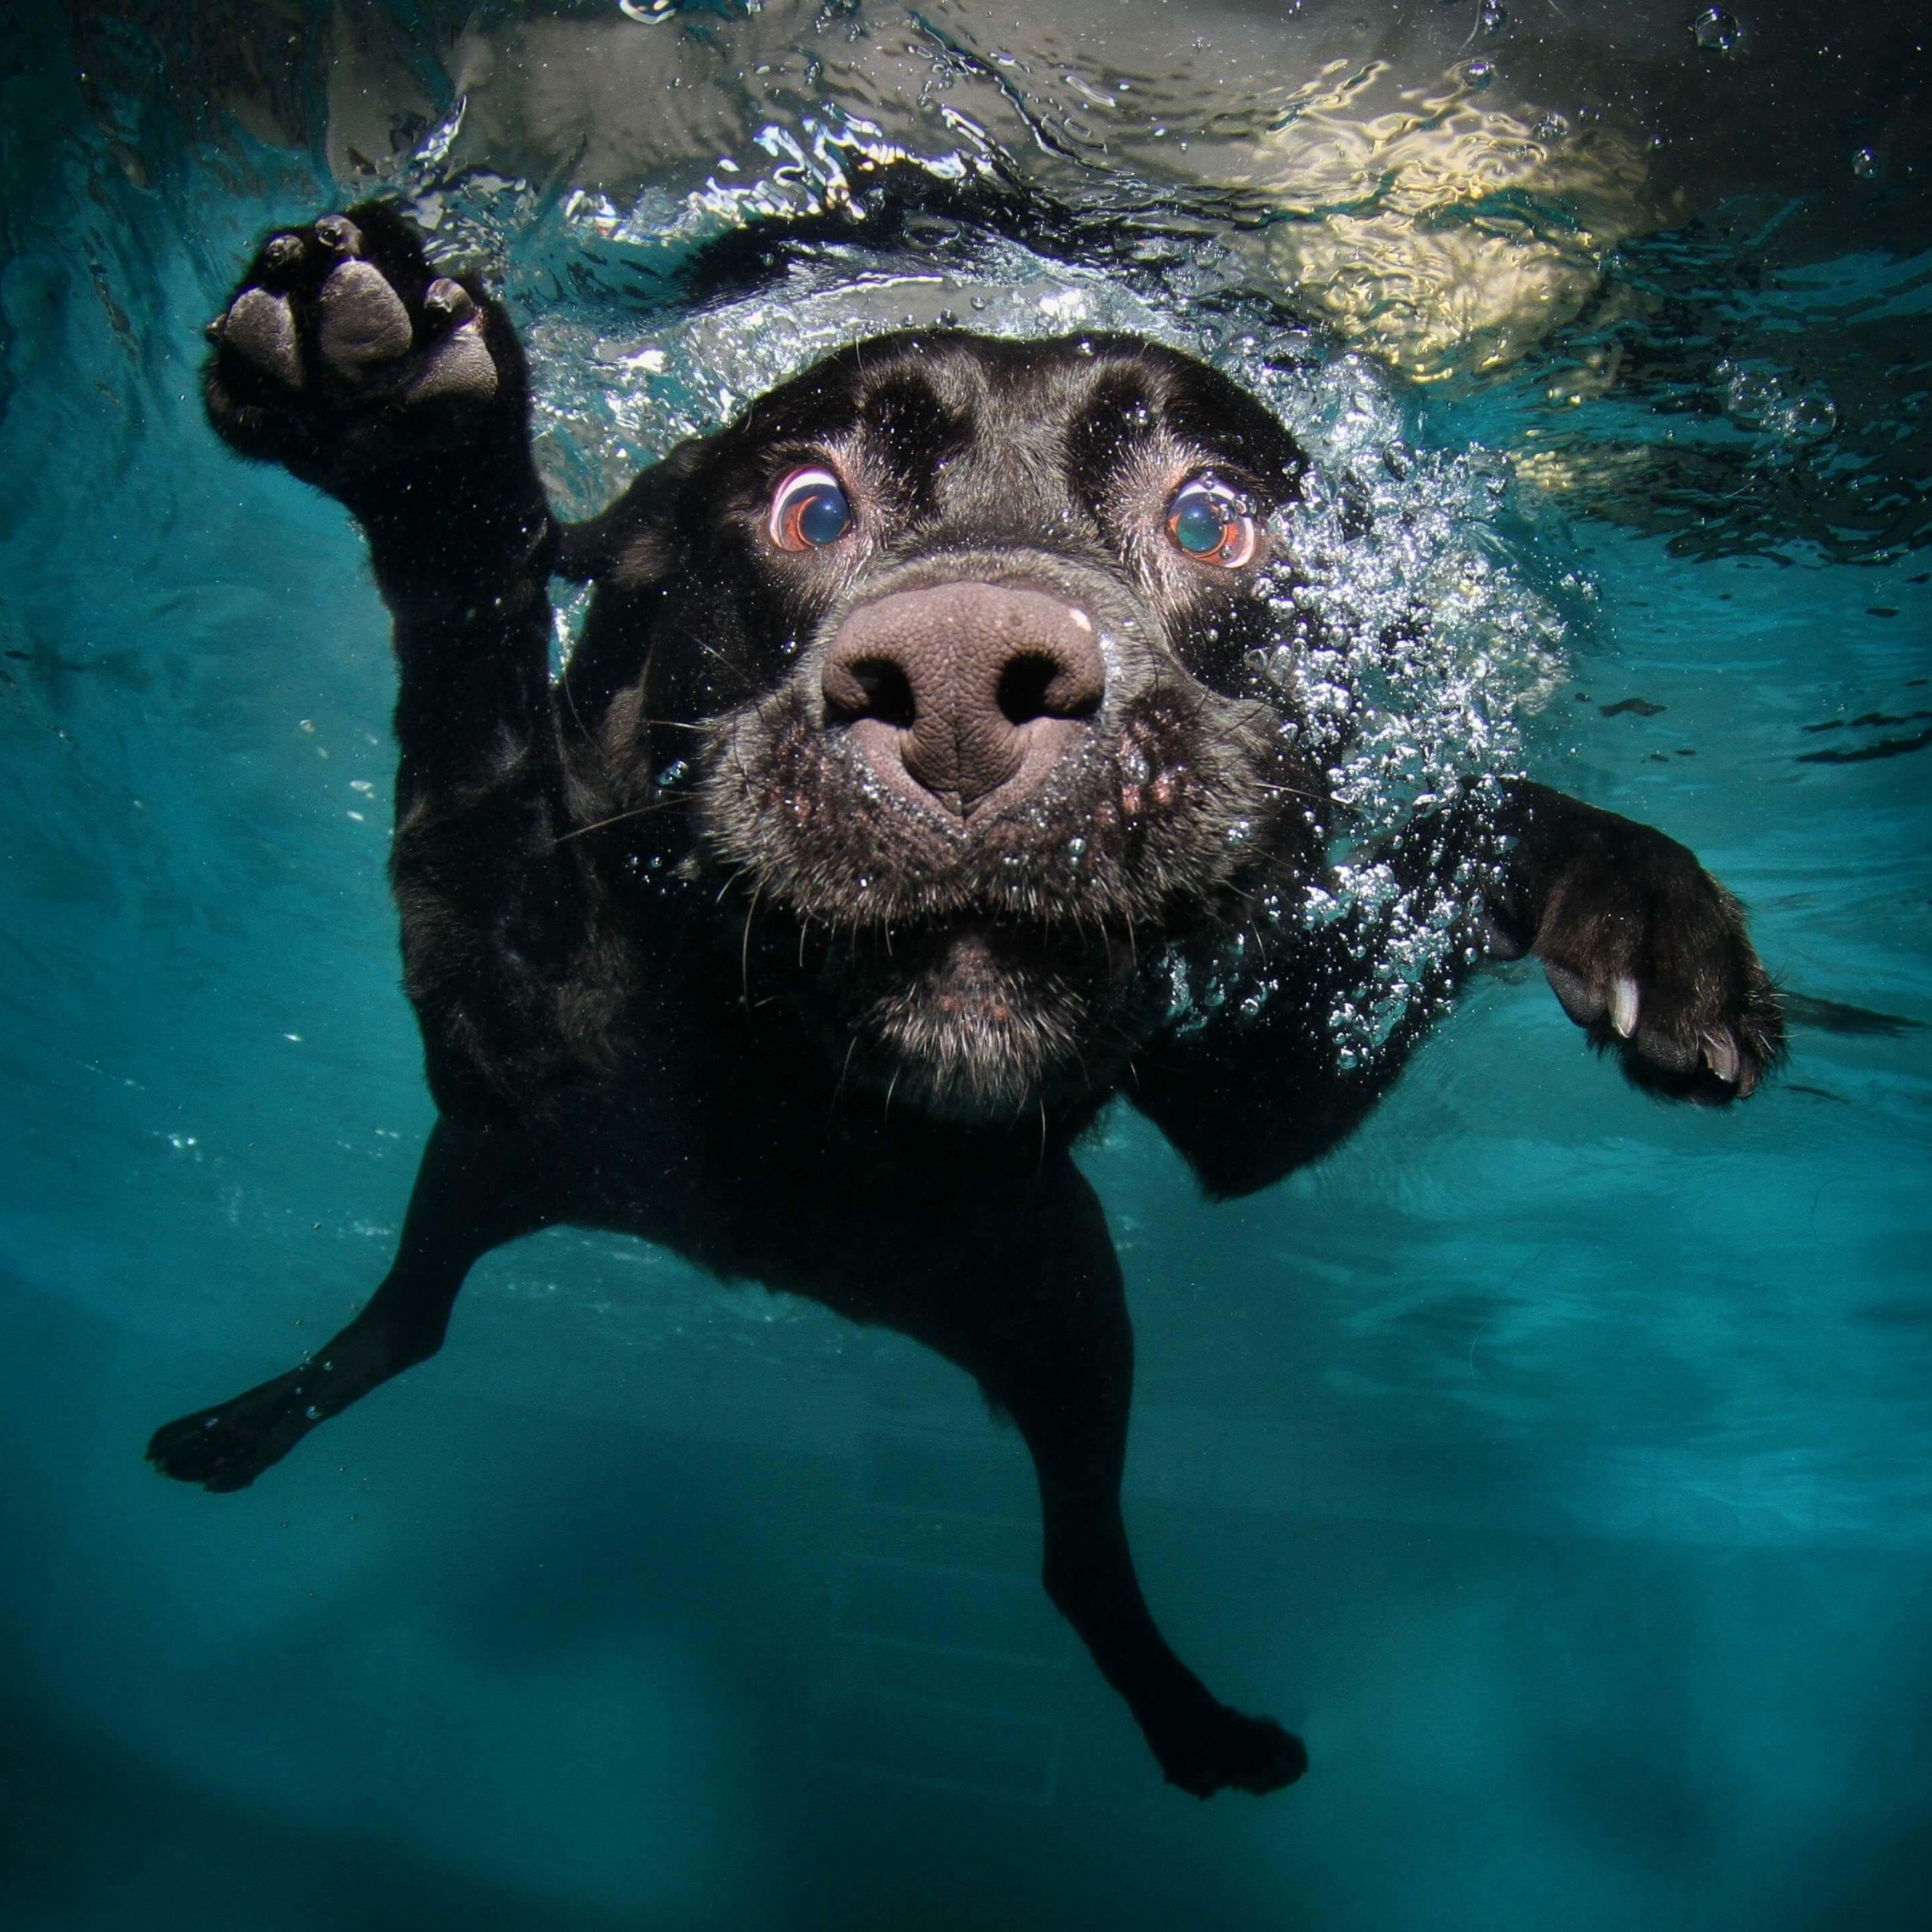 Underwater Dog Wallpaper for Apple iPad Air